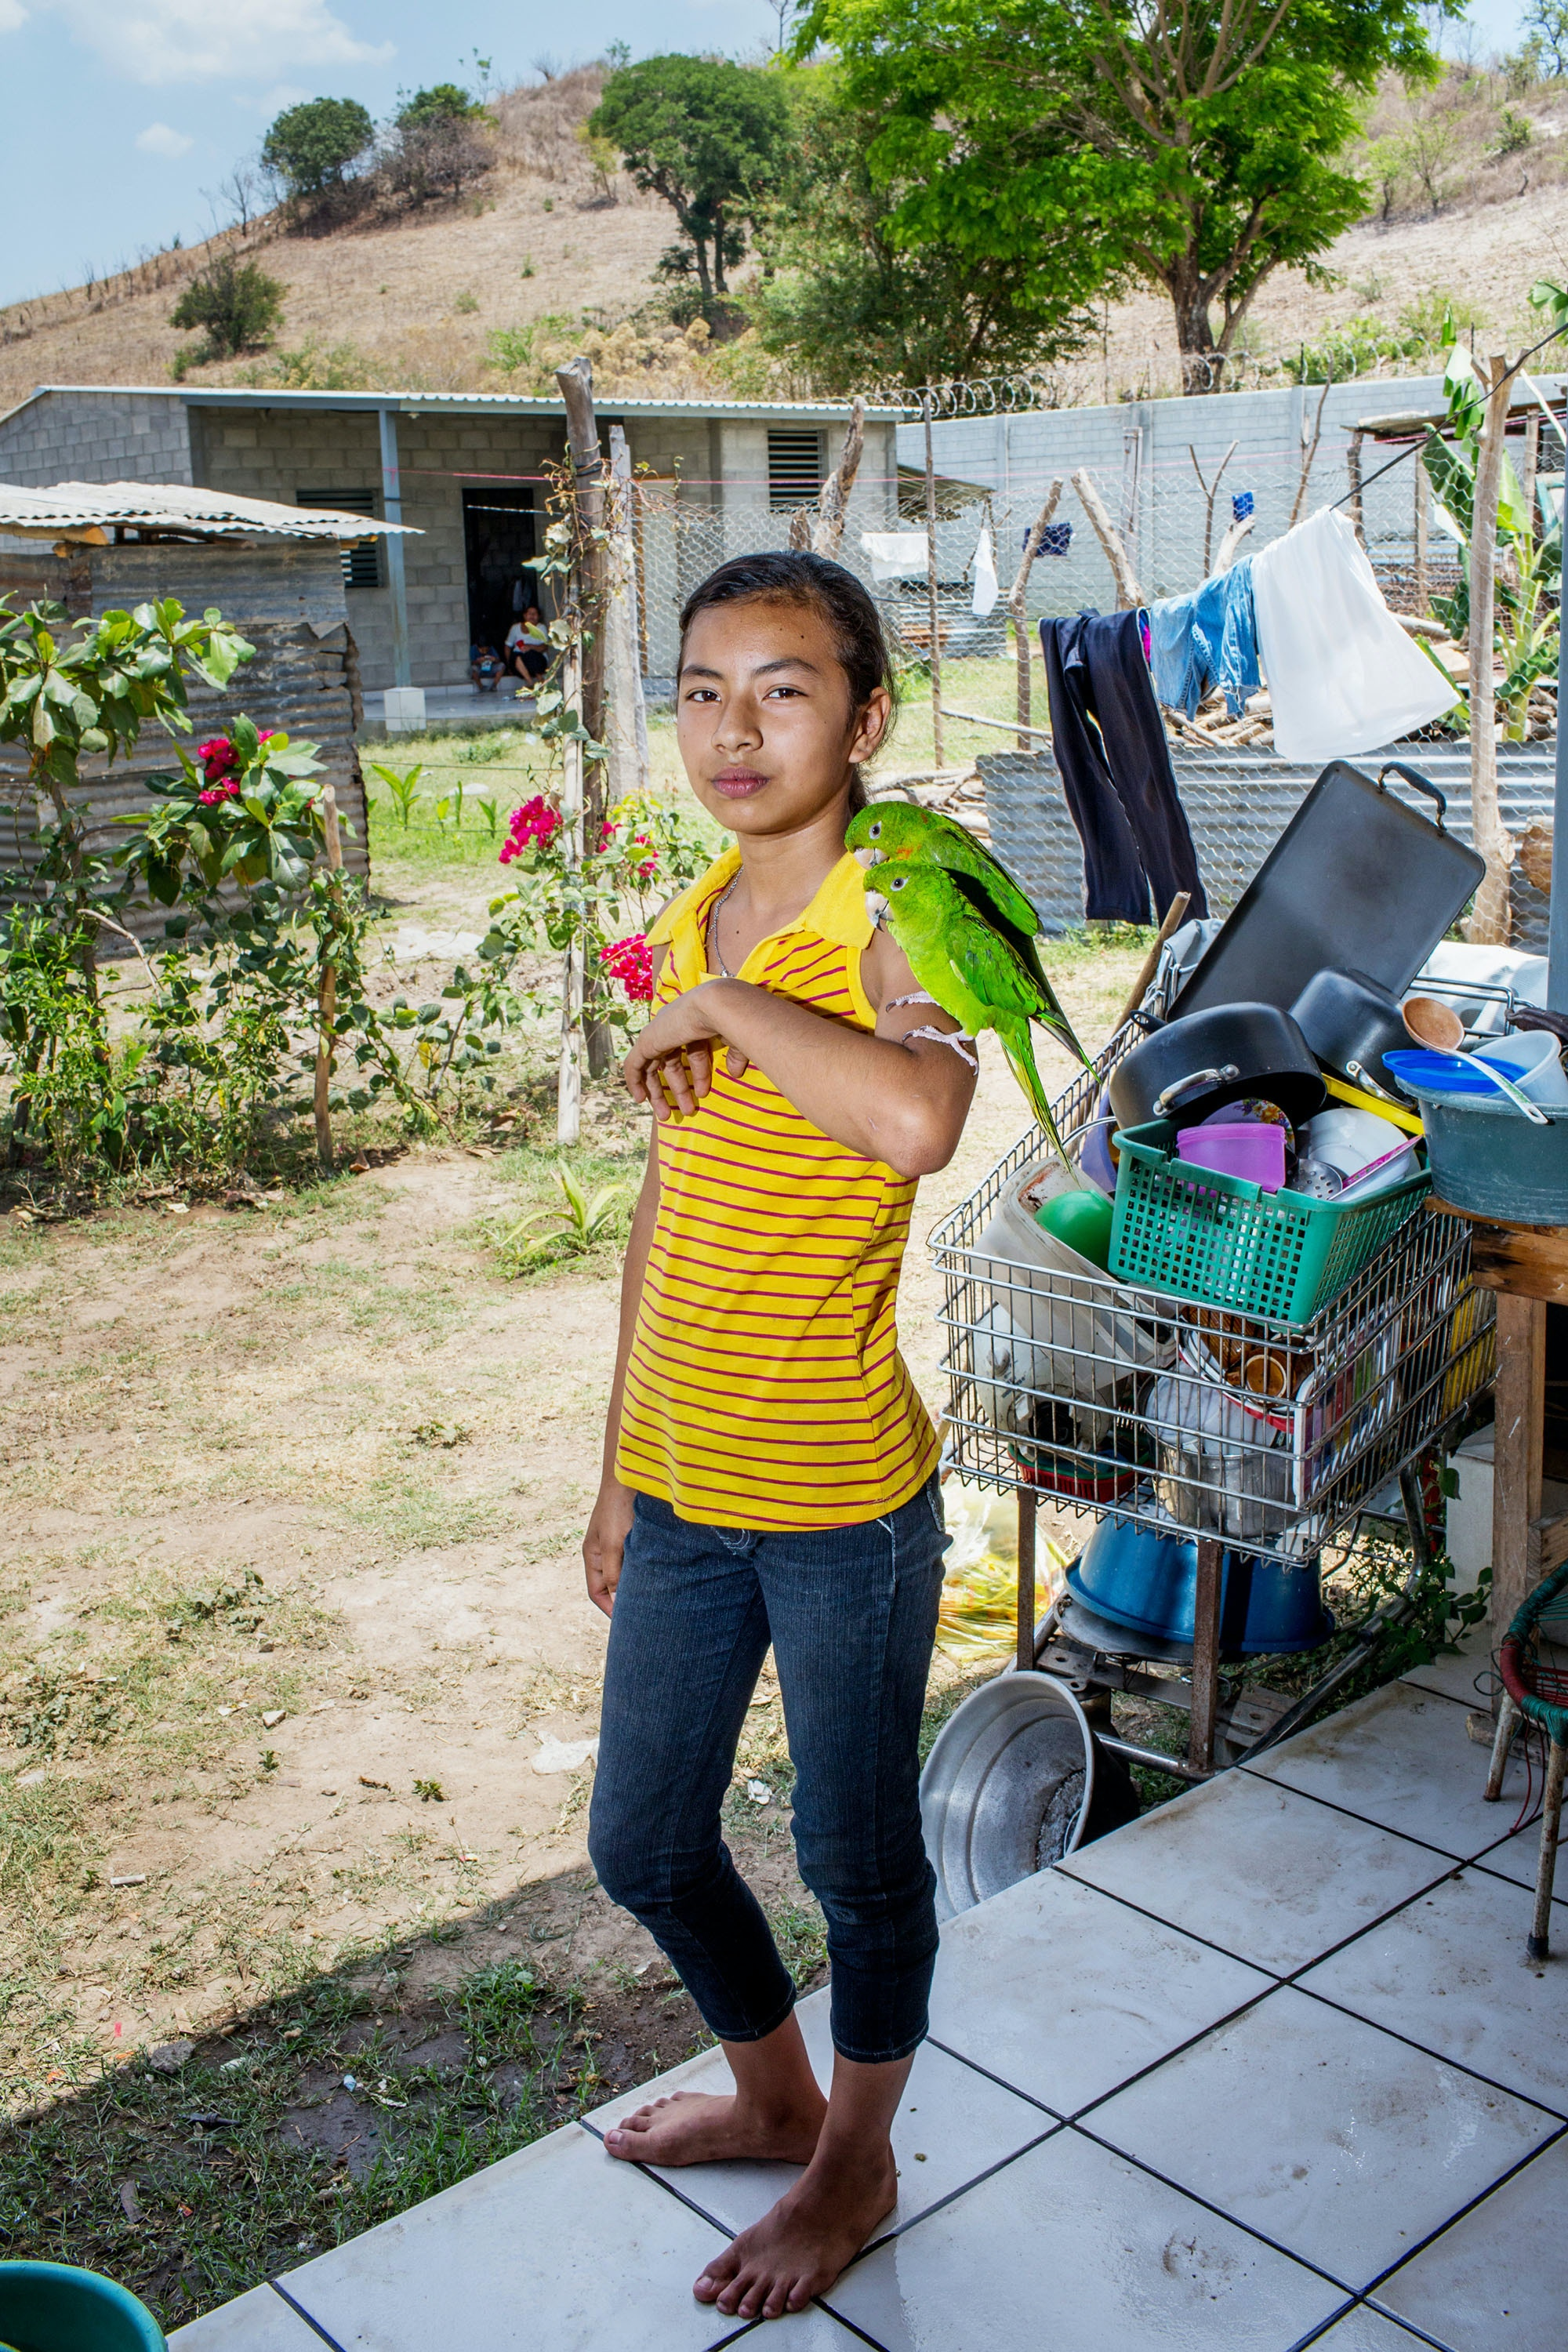 April 2017, El Salvador, San Salvador. 13 year old Kenya Fabiola Gonzales Trinidad holds her pet parrots on her arm at her home outside of San Salvador. She has just moved to the new community of new cinder block 3 room houses built with church donations, because her old neighborhood where she lived with her brother and grandfather was too dangerous due to gang activity. (Natalie Keyssar)